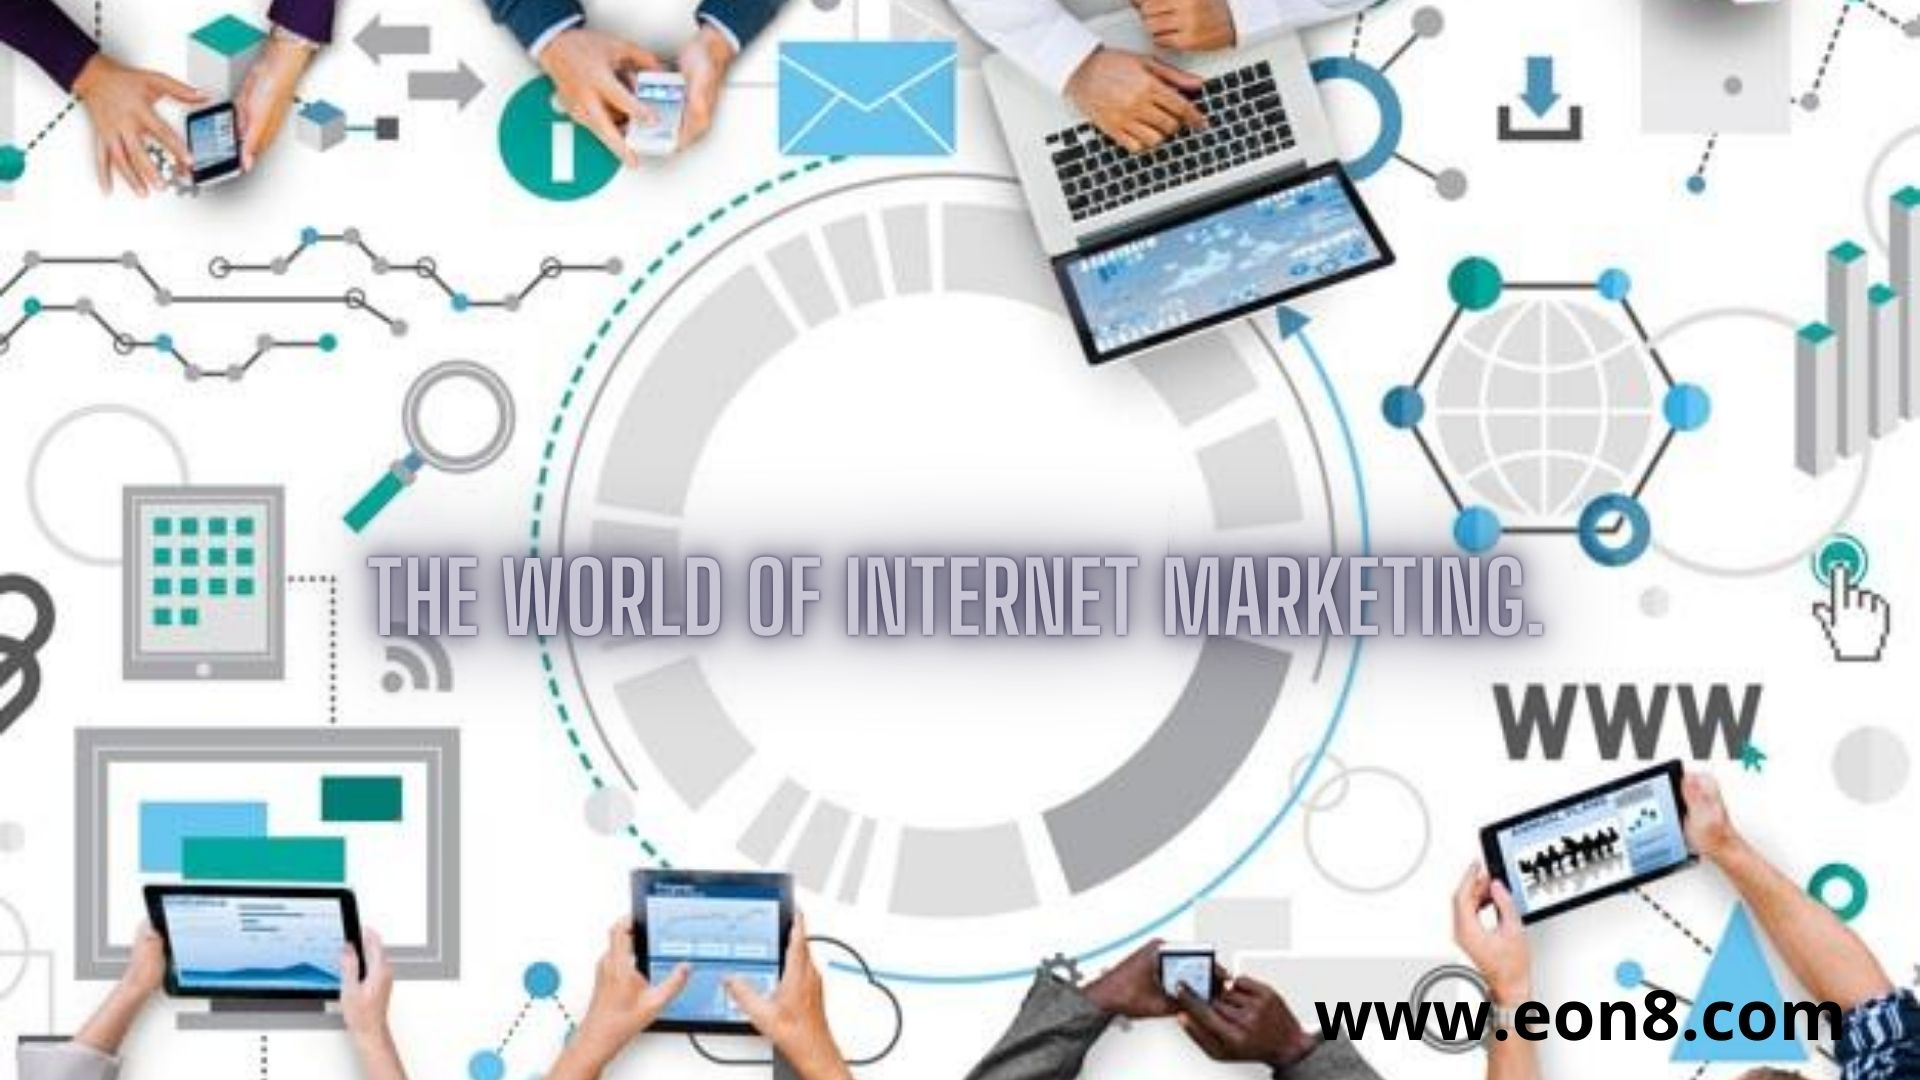 The World of Internet Marketing